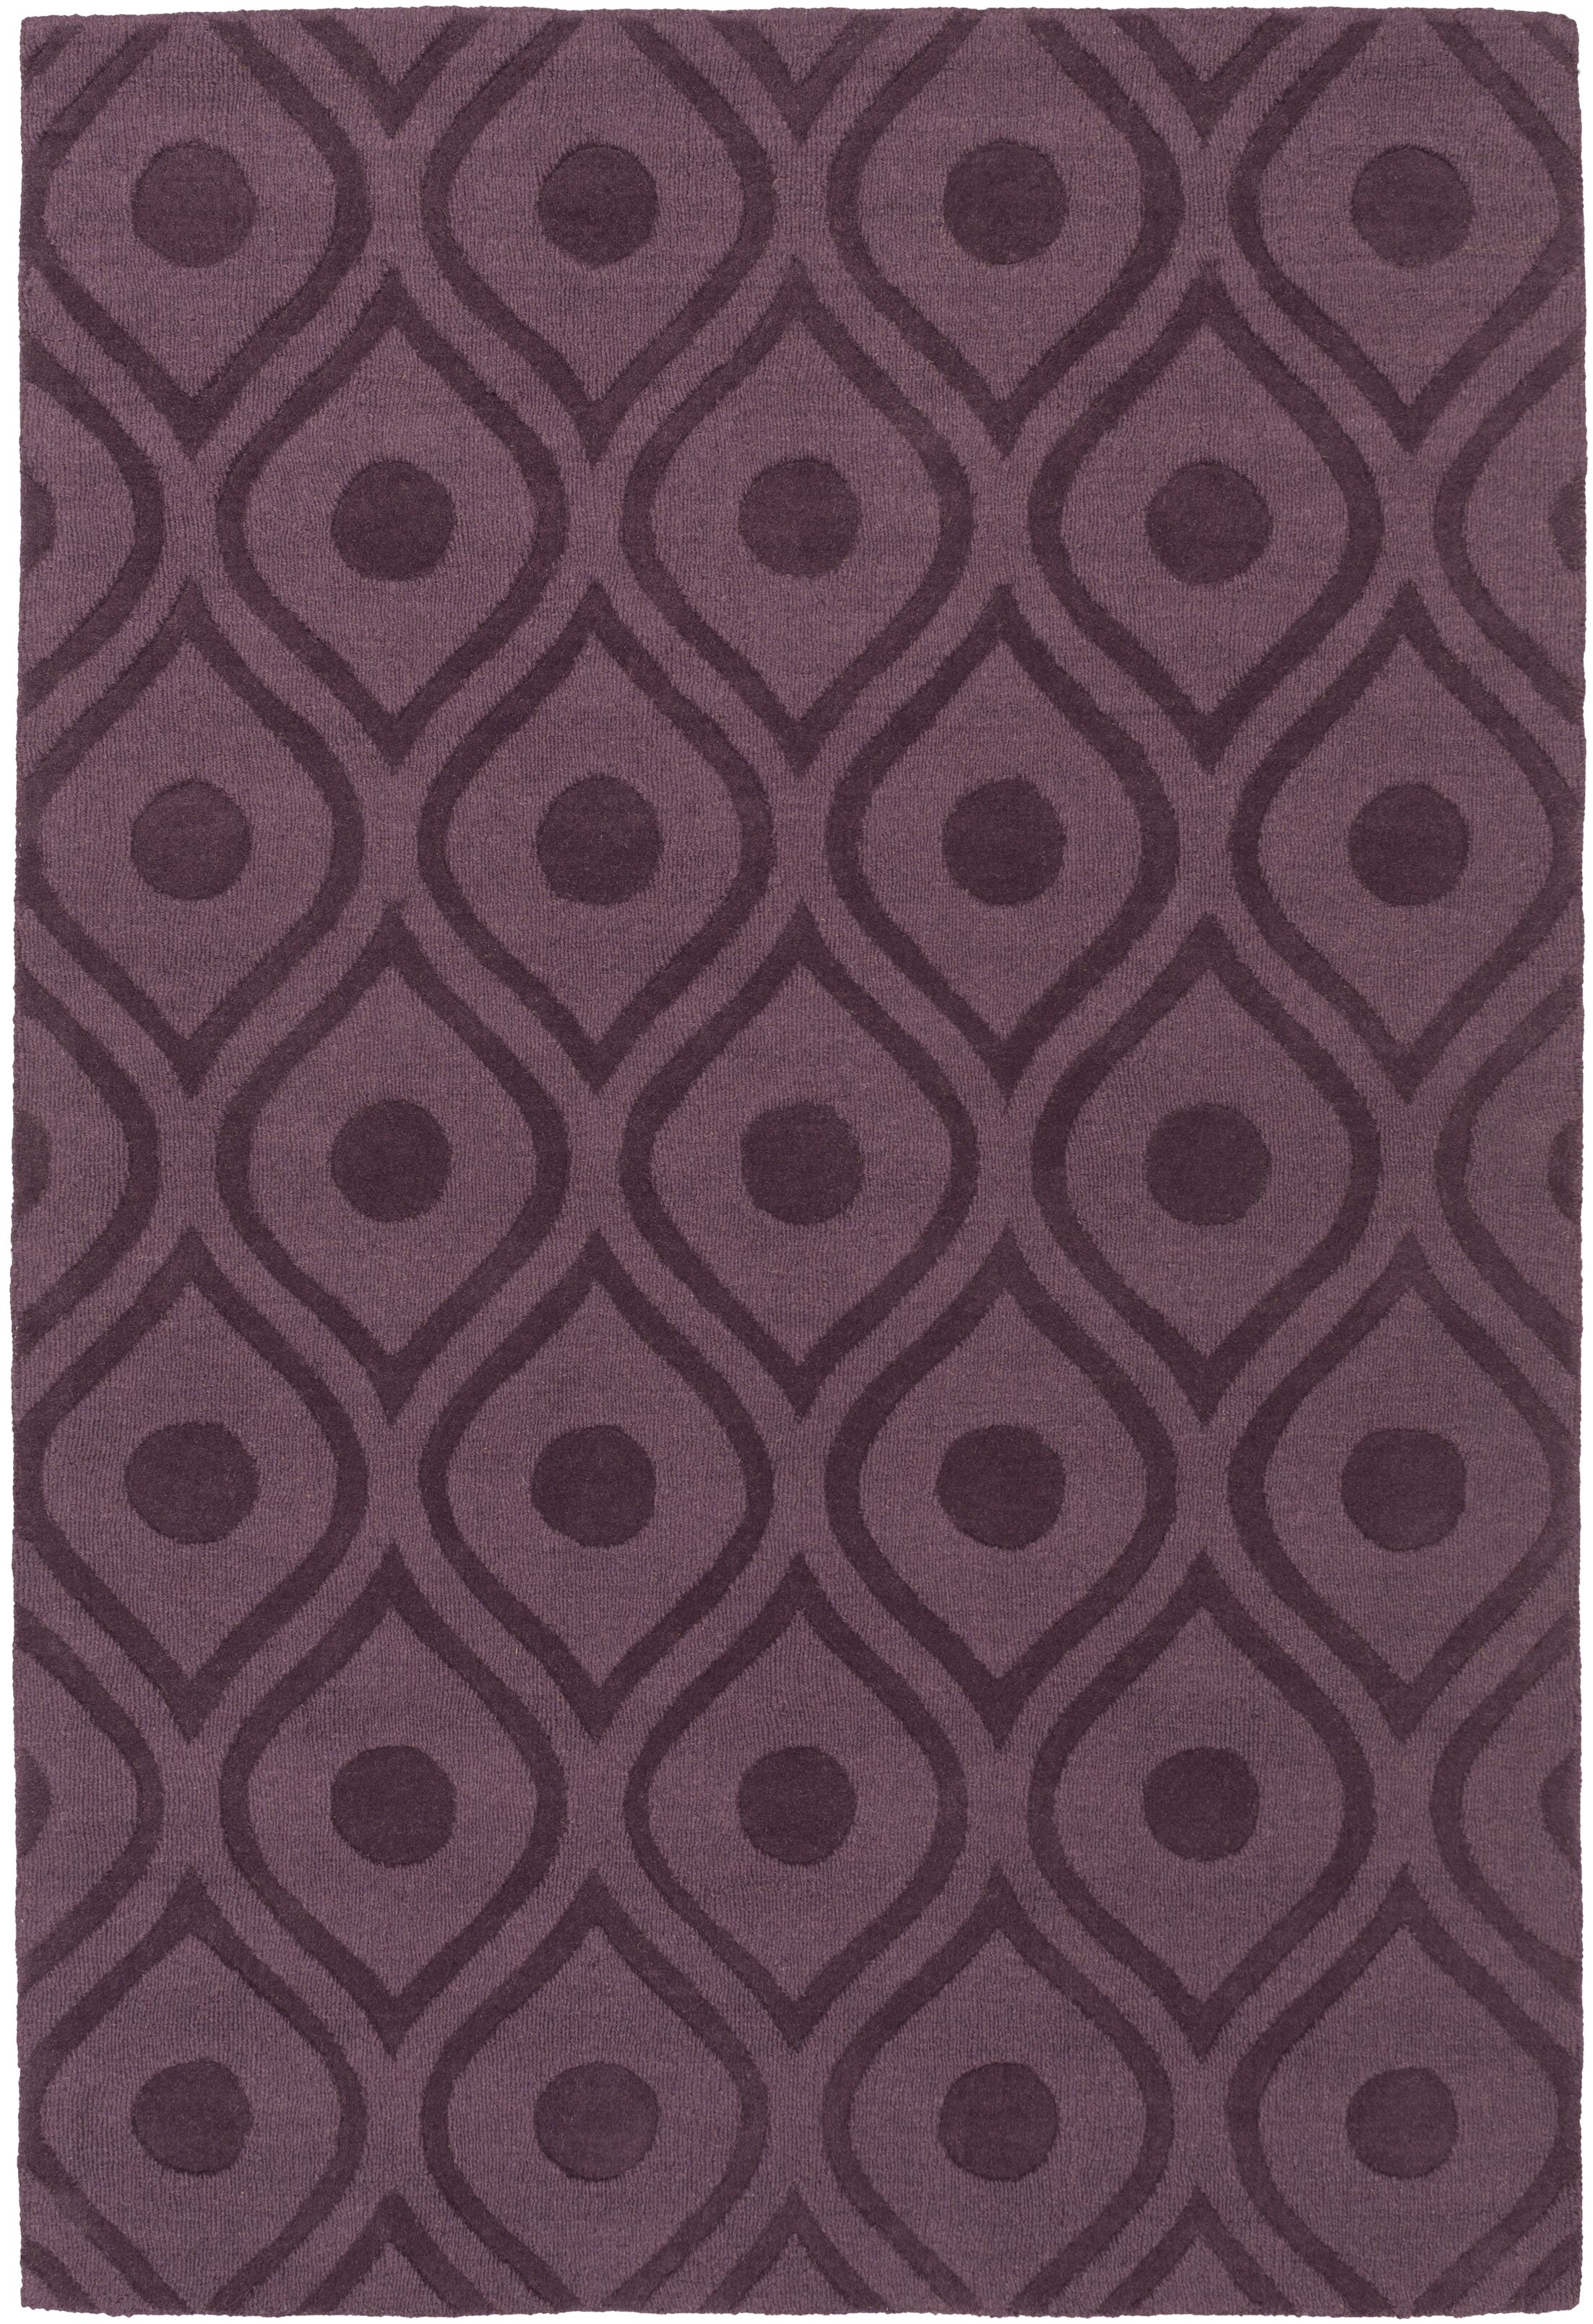 Castro Hand Woven Wool Purple Area Rug Rug Size: Rectangle 10' x 14'